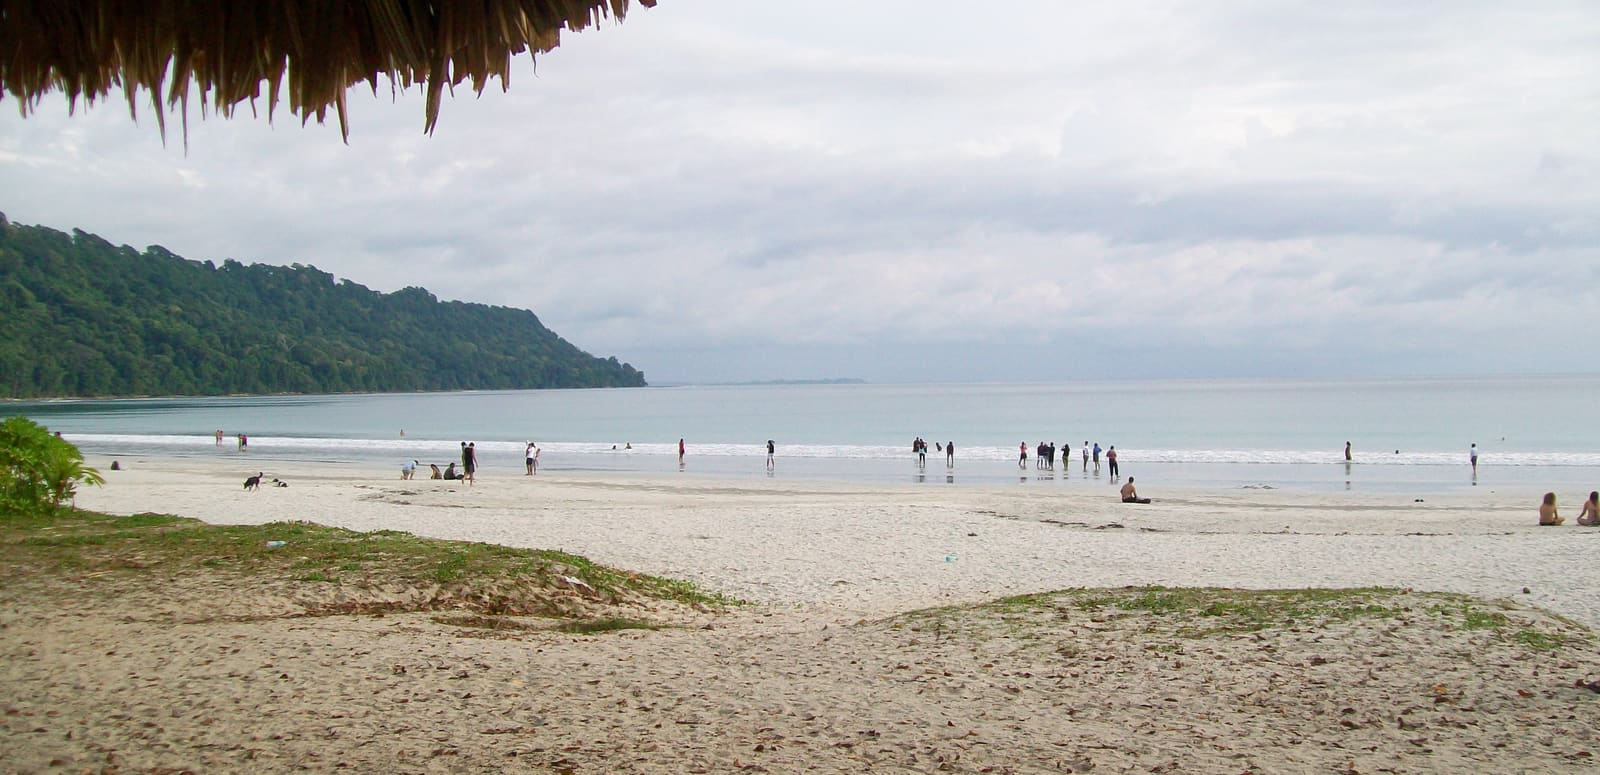 1492612751_radhanagar_beach__havelock_islands__andaman_and_nicobar.jpg